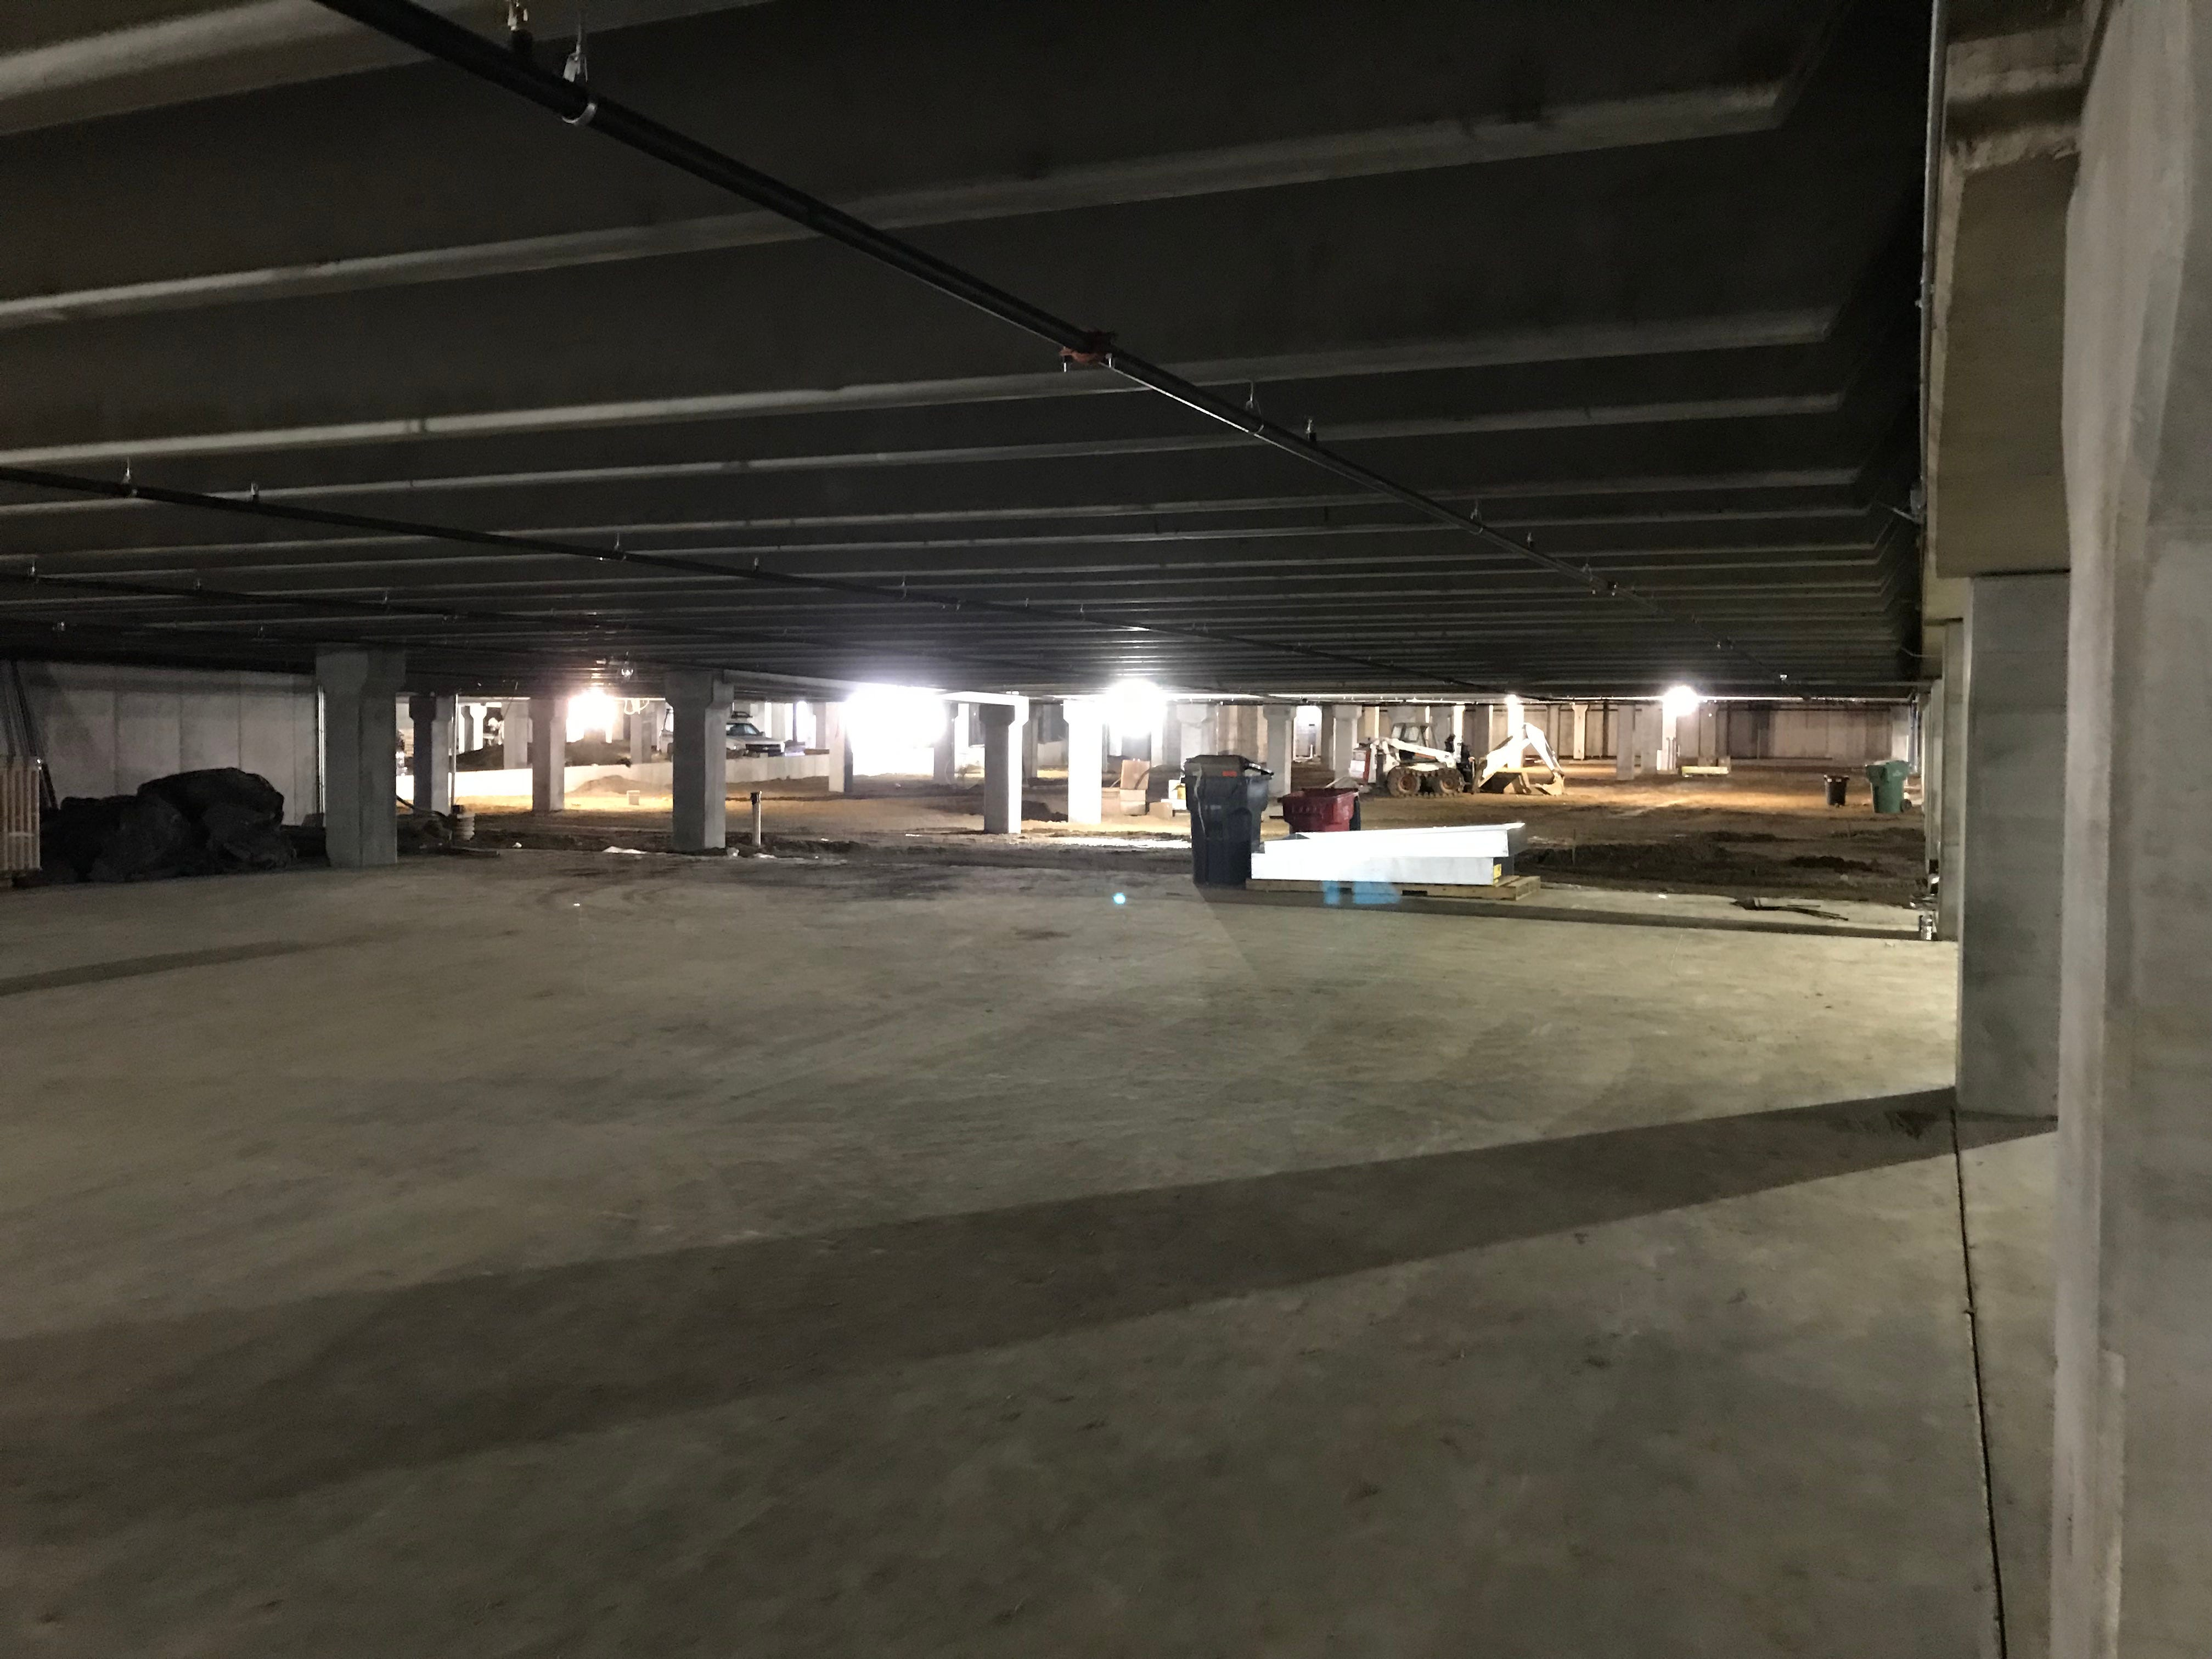 The expansive underground parking garage at The Cascade at the Falls building in uptown Sioux Falls.